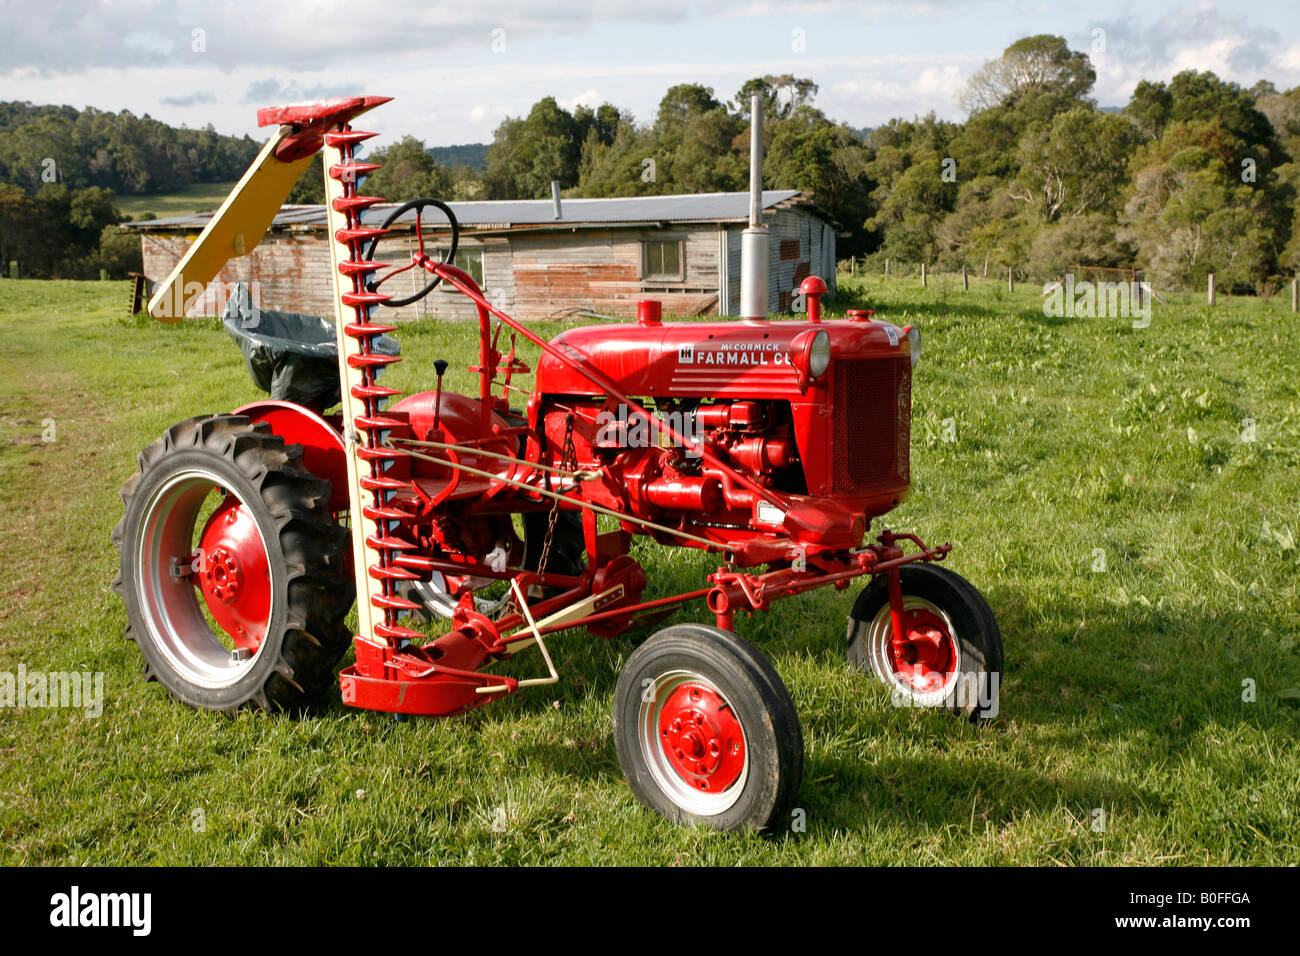 Antique 1952 International Farmall Cub Tractor With A